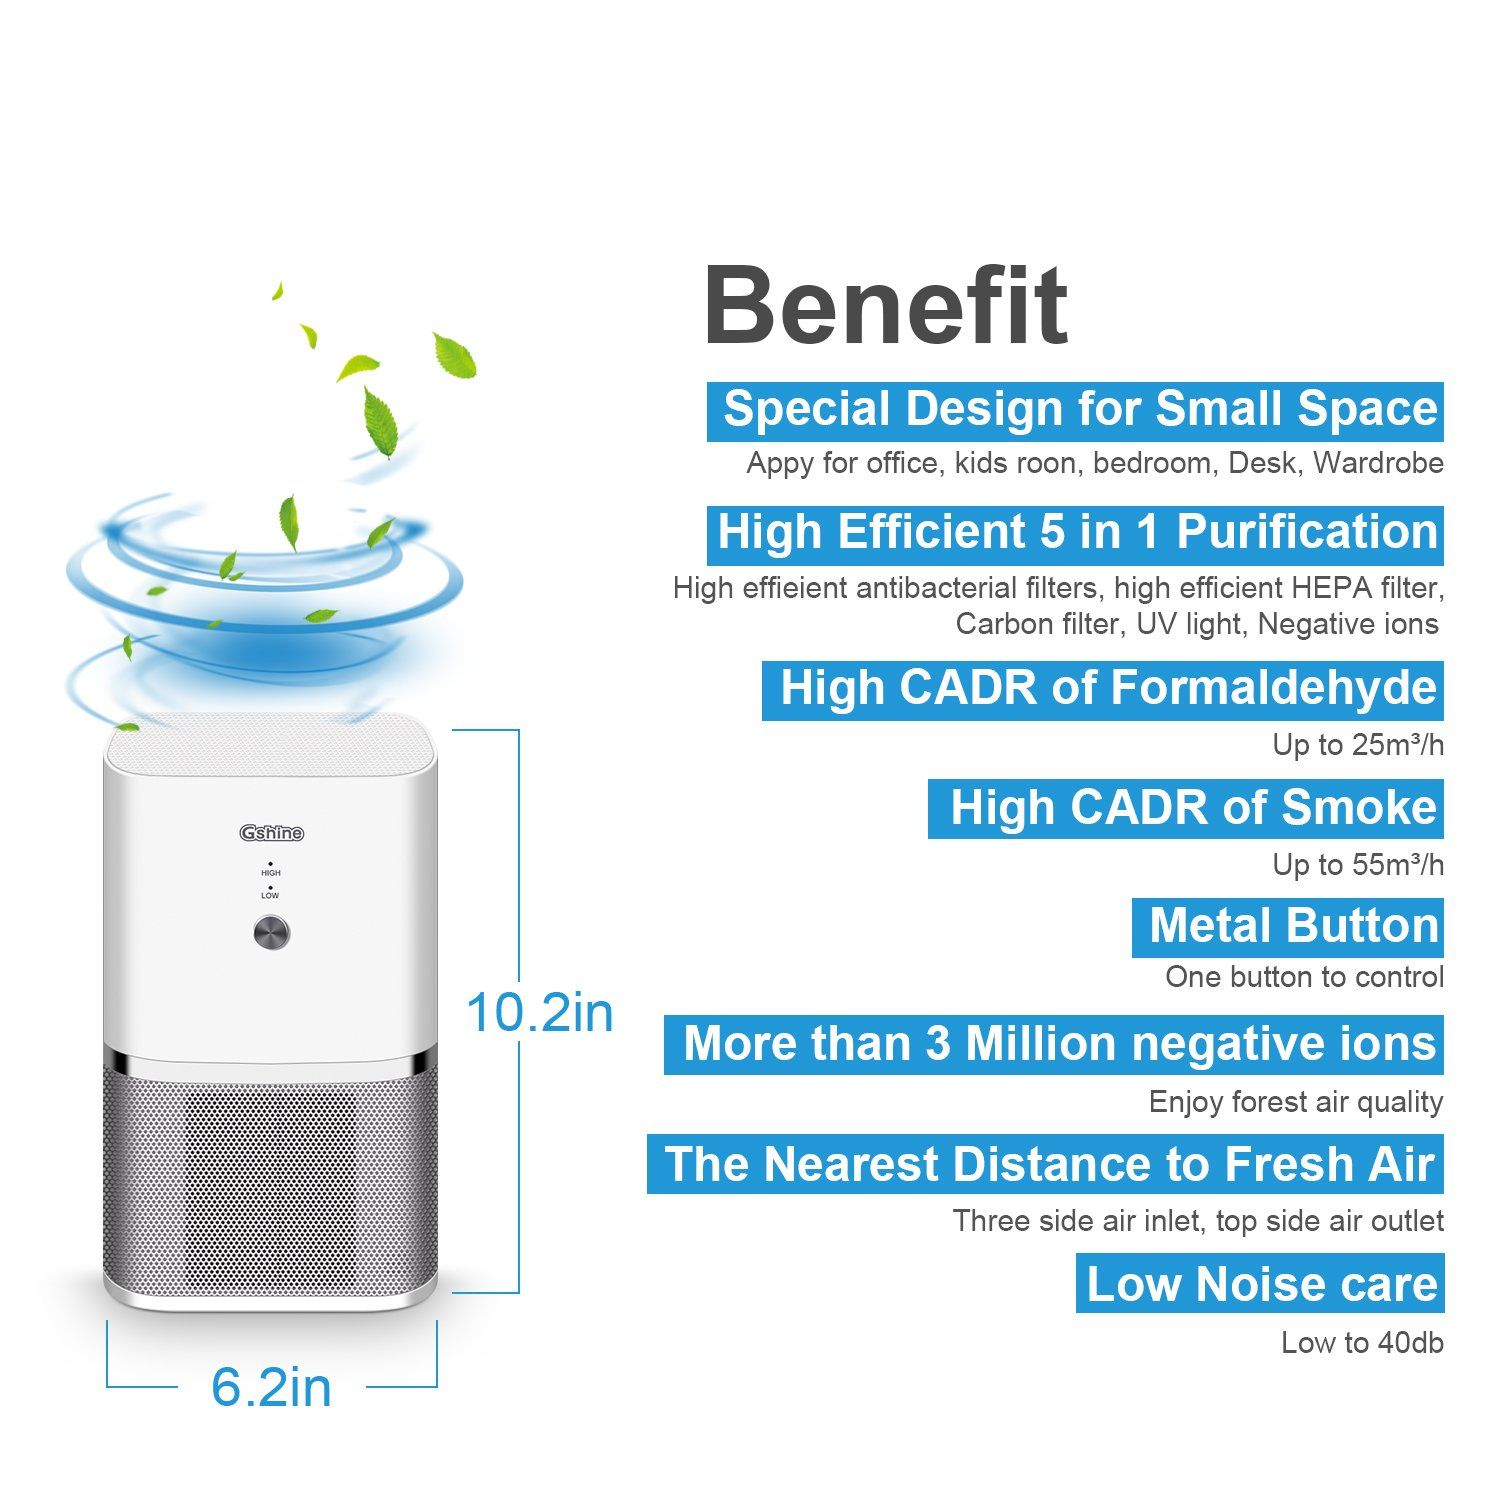 Gshine Air Purifier with HEPA Filter Portable Quiet Mini